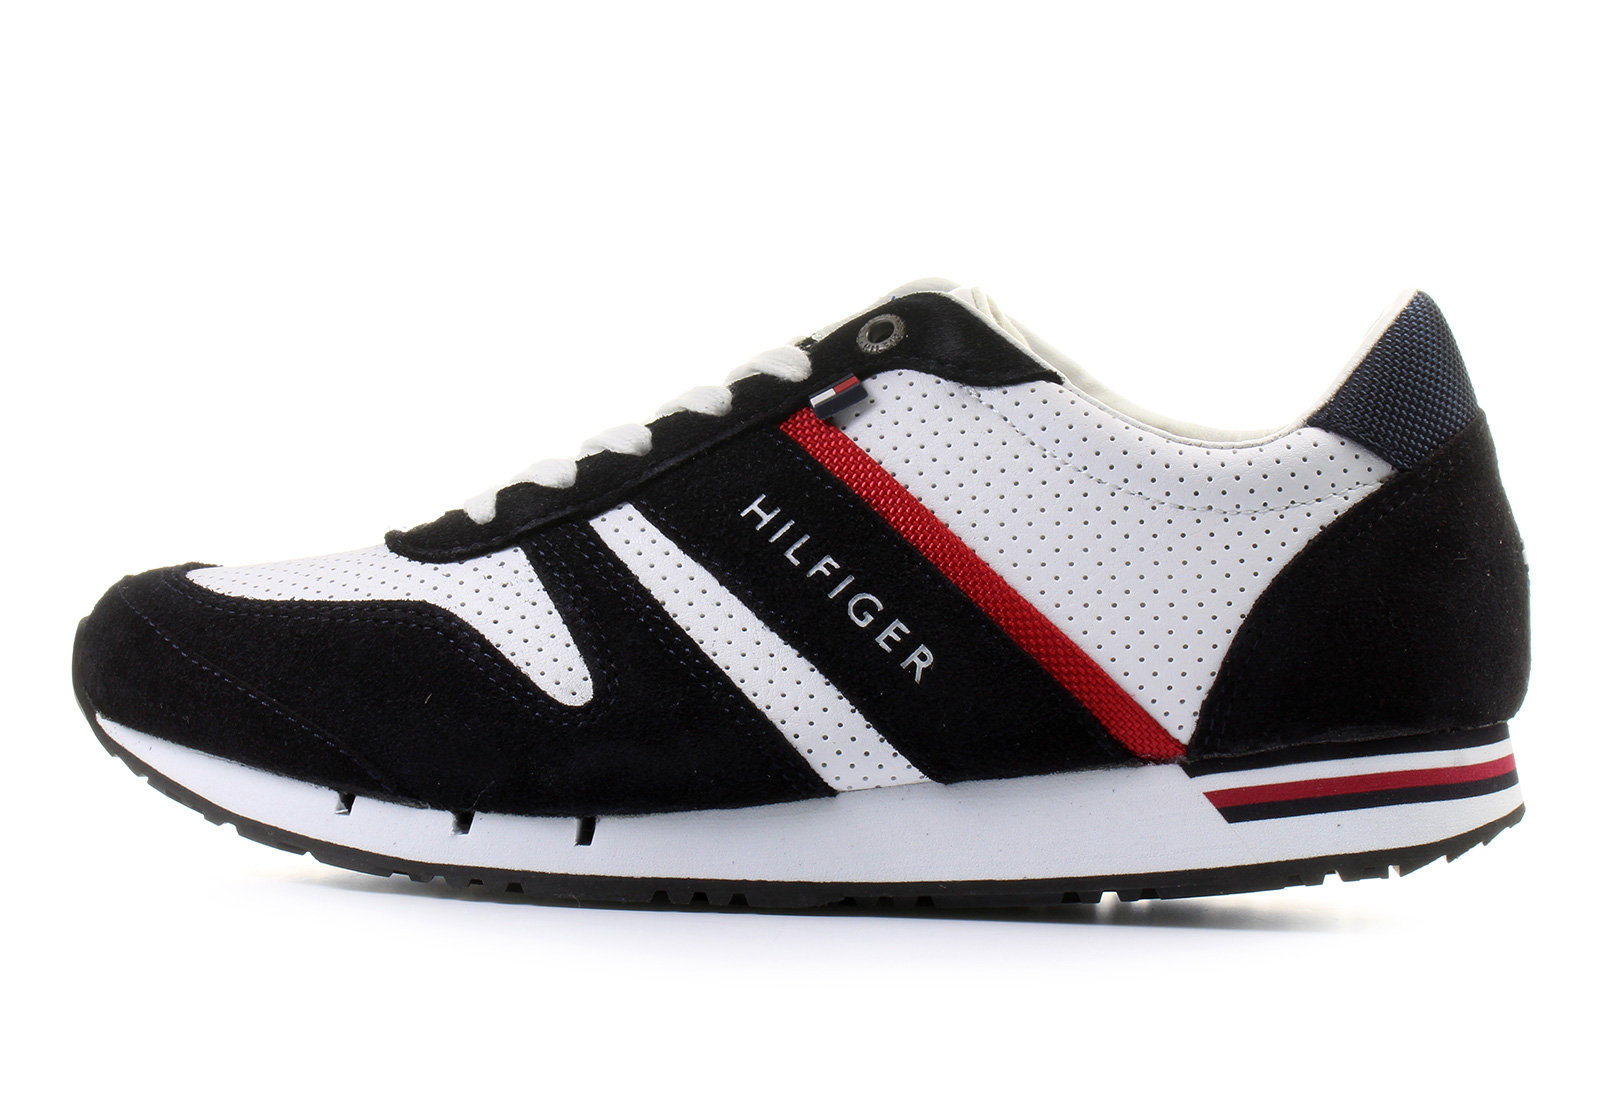 116fb15a14 Tommy Hilfiger Topánky - Maxwell 5c - 17S-1068-020 - Tenisky ...